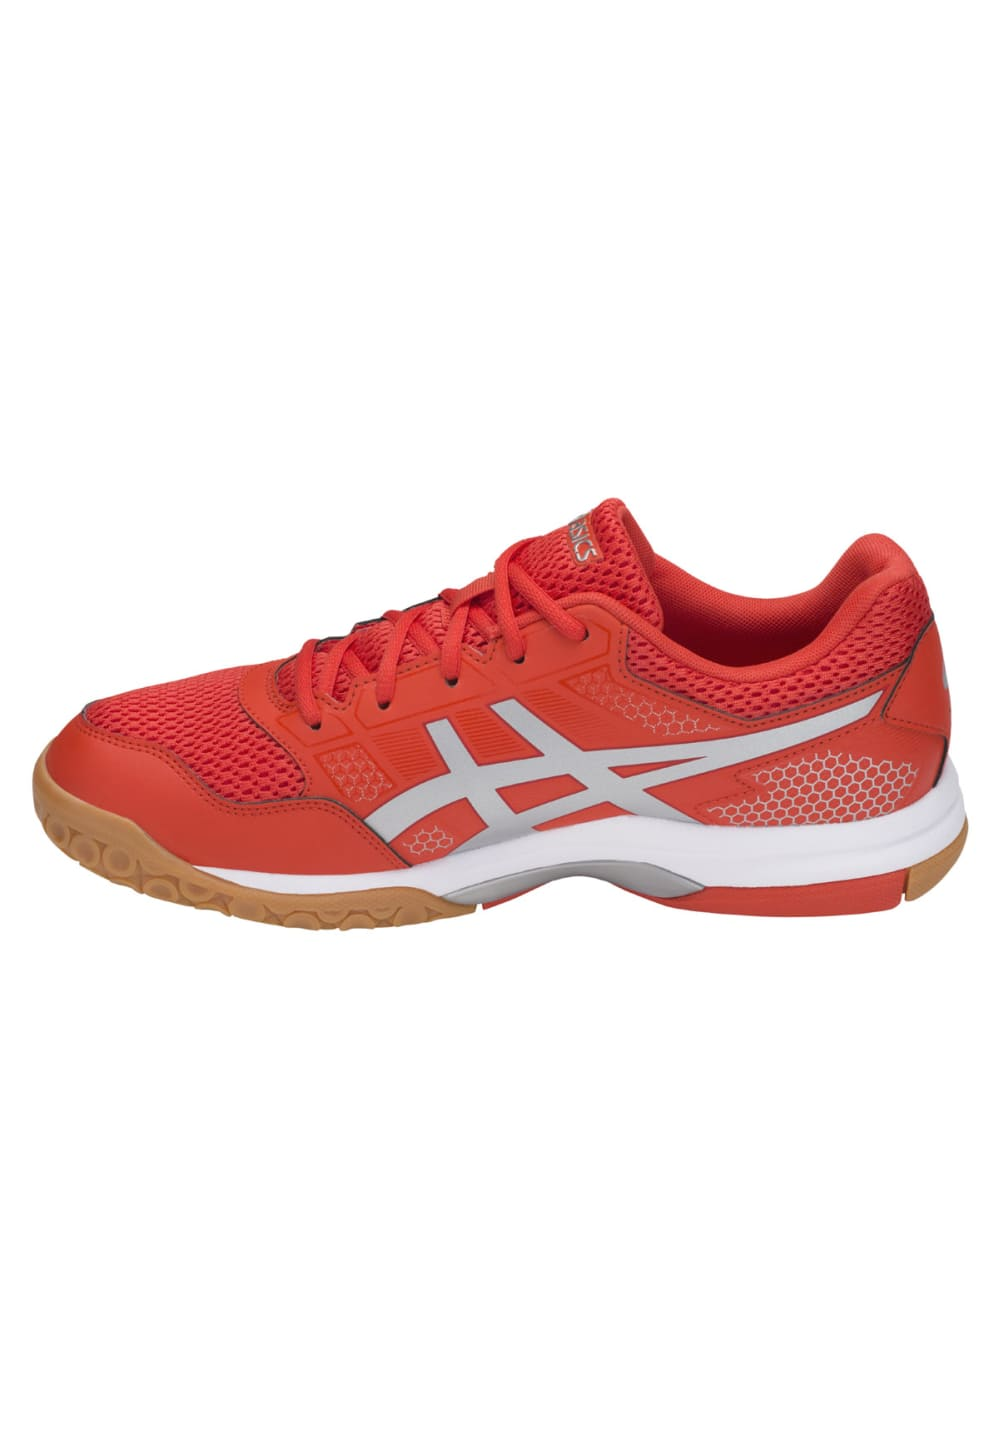 71813611e35 ASICS GEL-Rocket 8 - Volleyball shoes for Men - Red